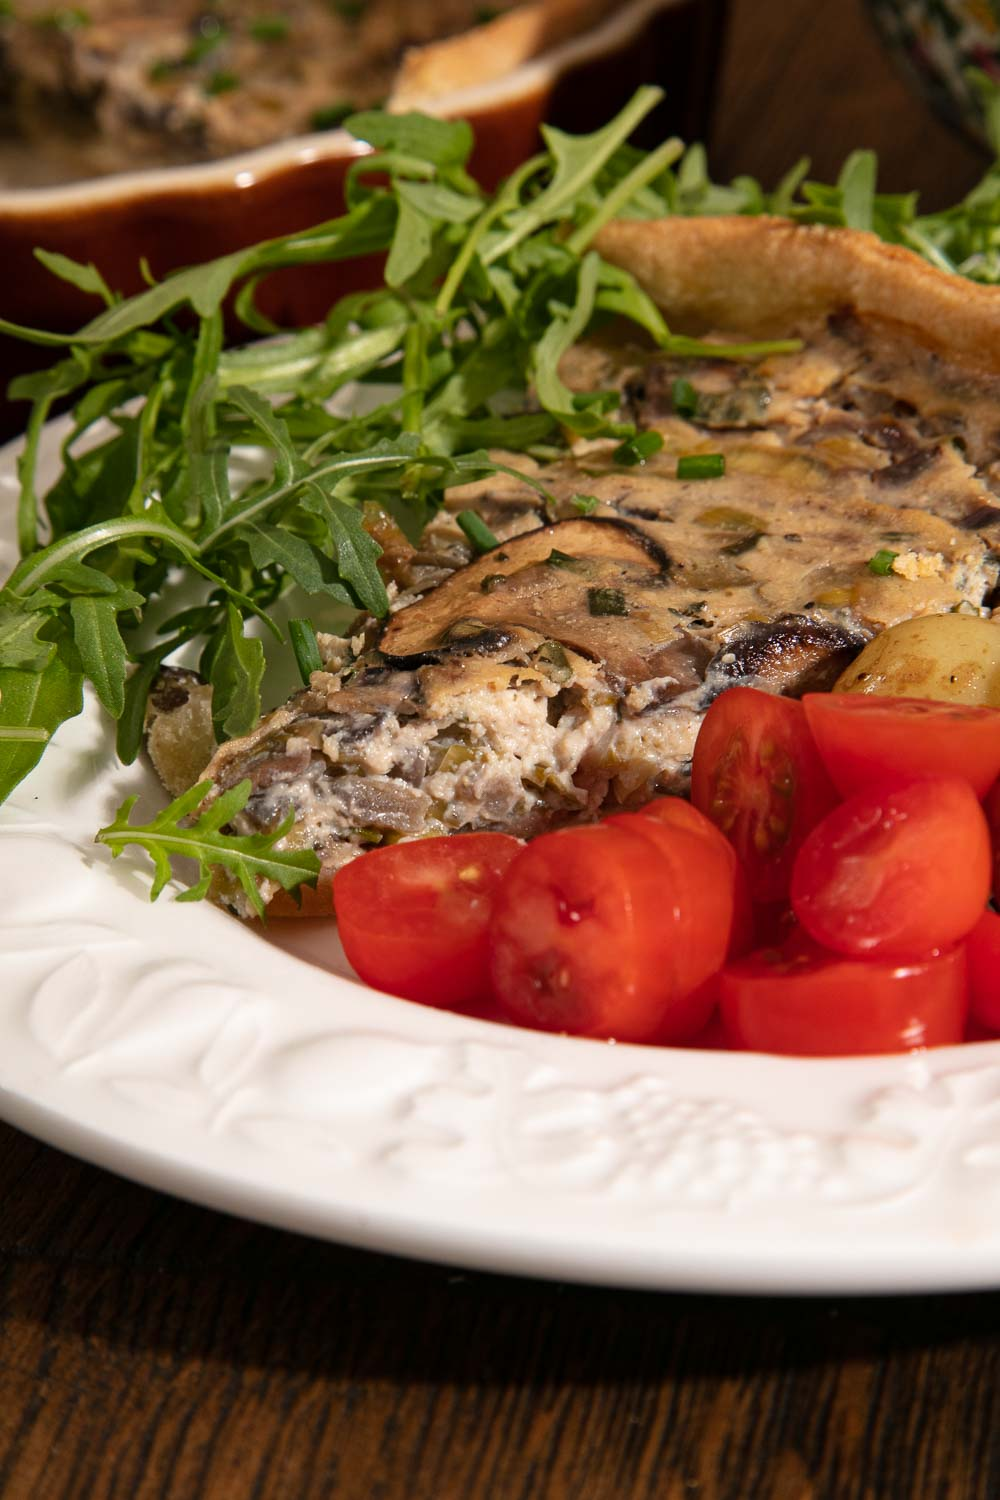 A slice of vegan quiche showing the creamy mushroom filling. Plated with tomatoes and rocket.